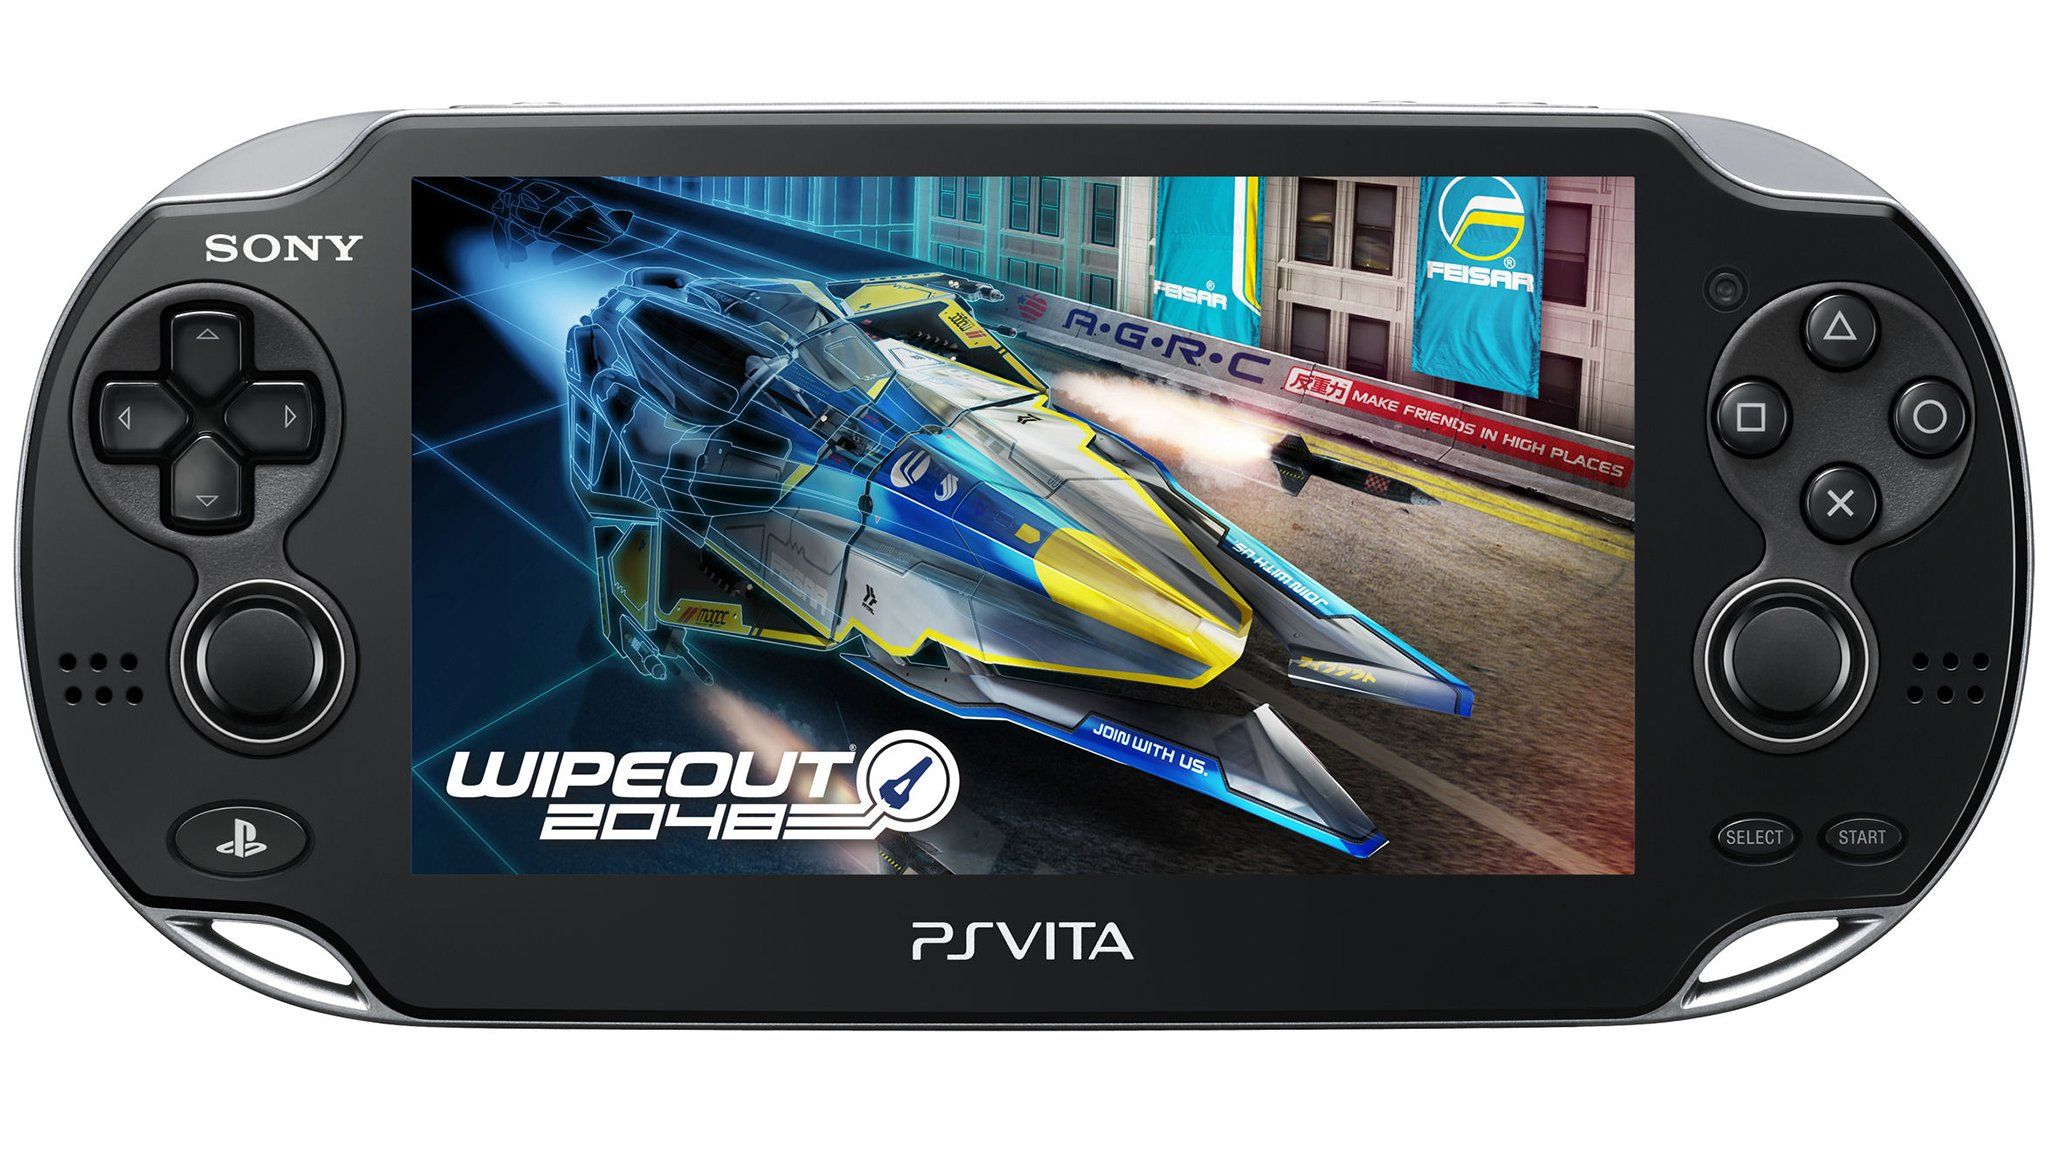 Sony Ps Vita Games : Best ps vita games must play for sony s